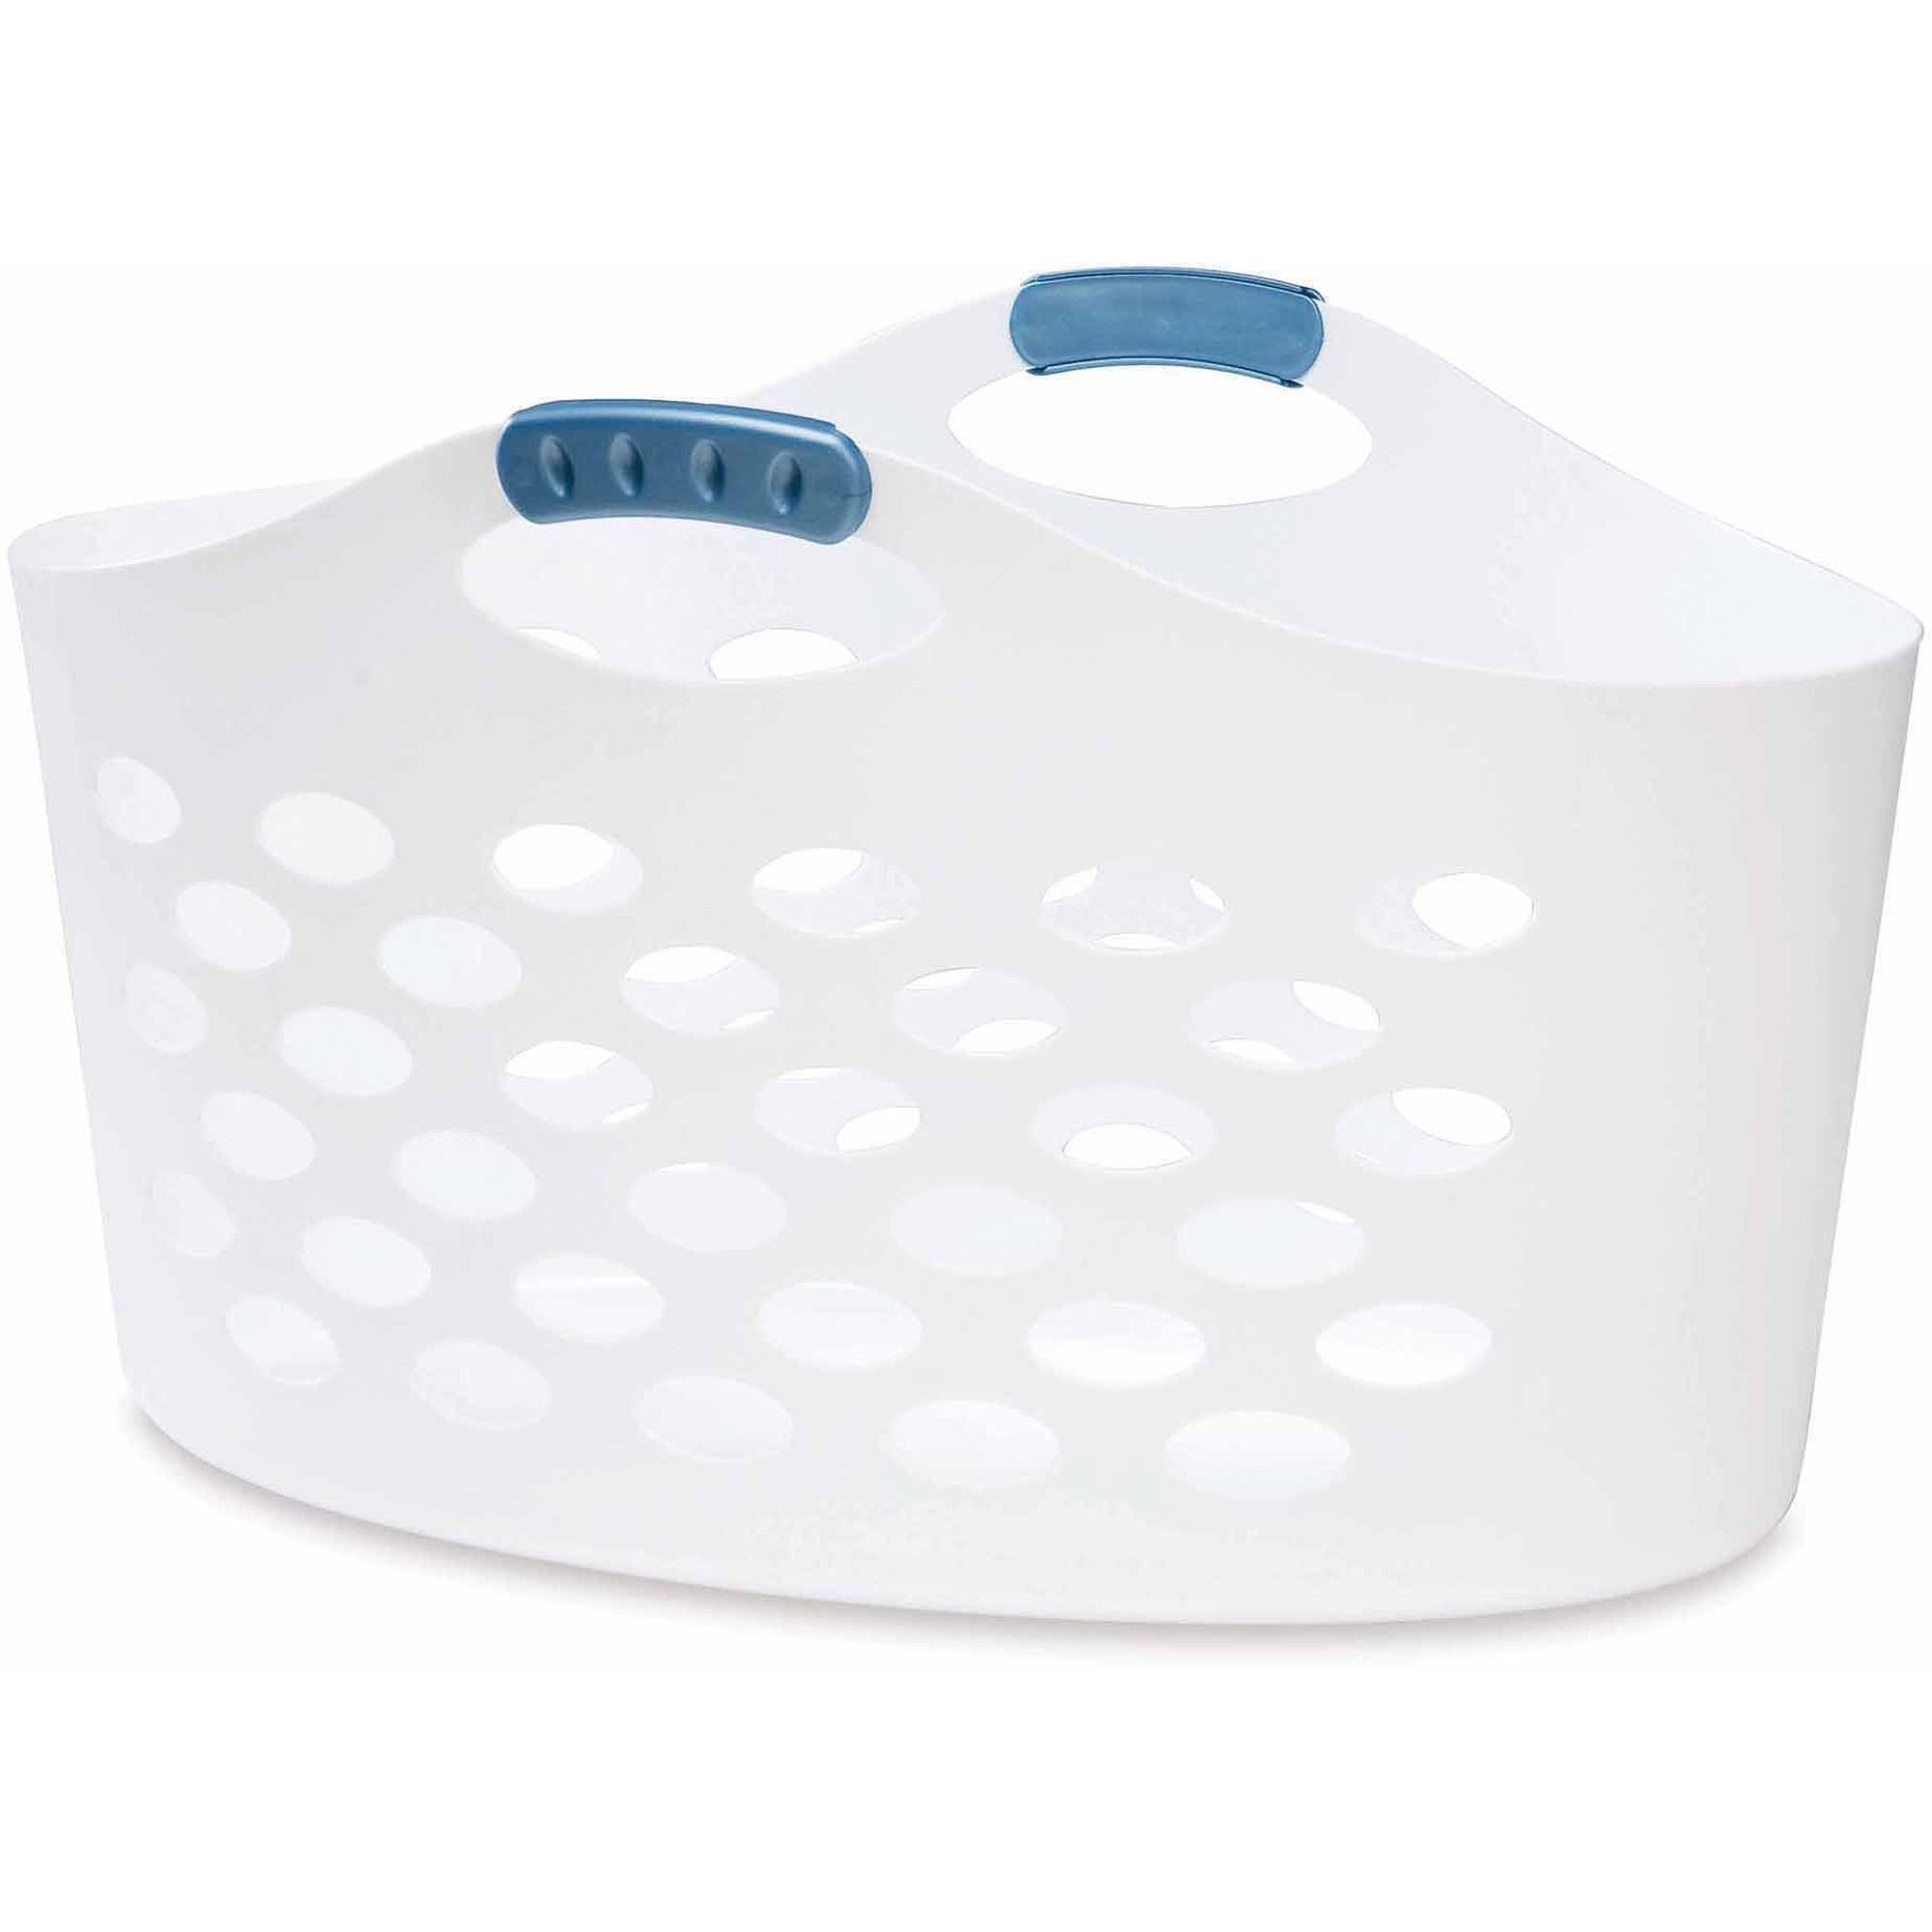 Rubbermaid Flex'n Carry Basket, White